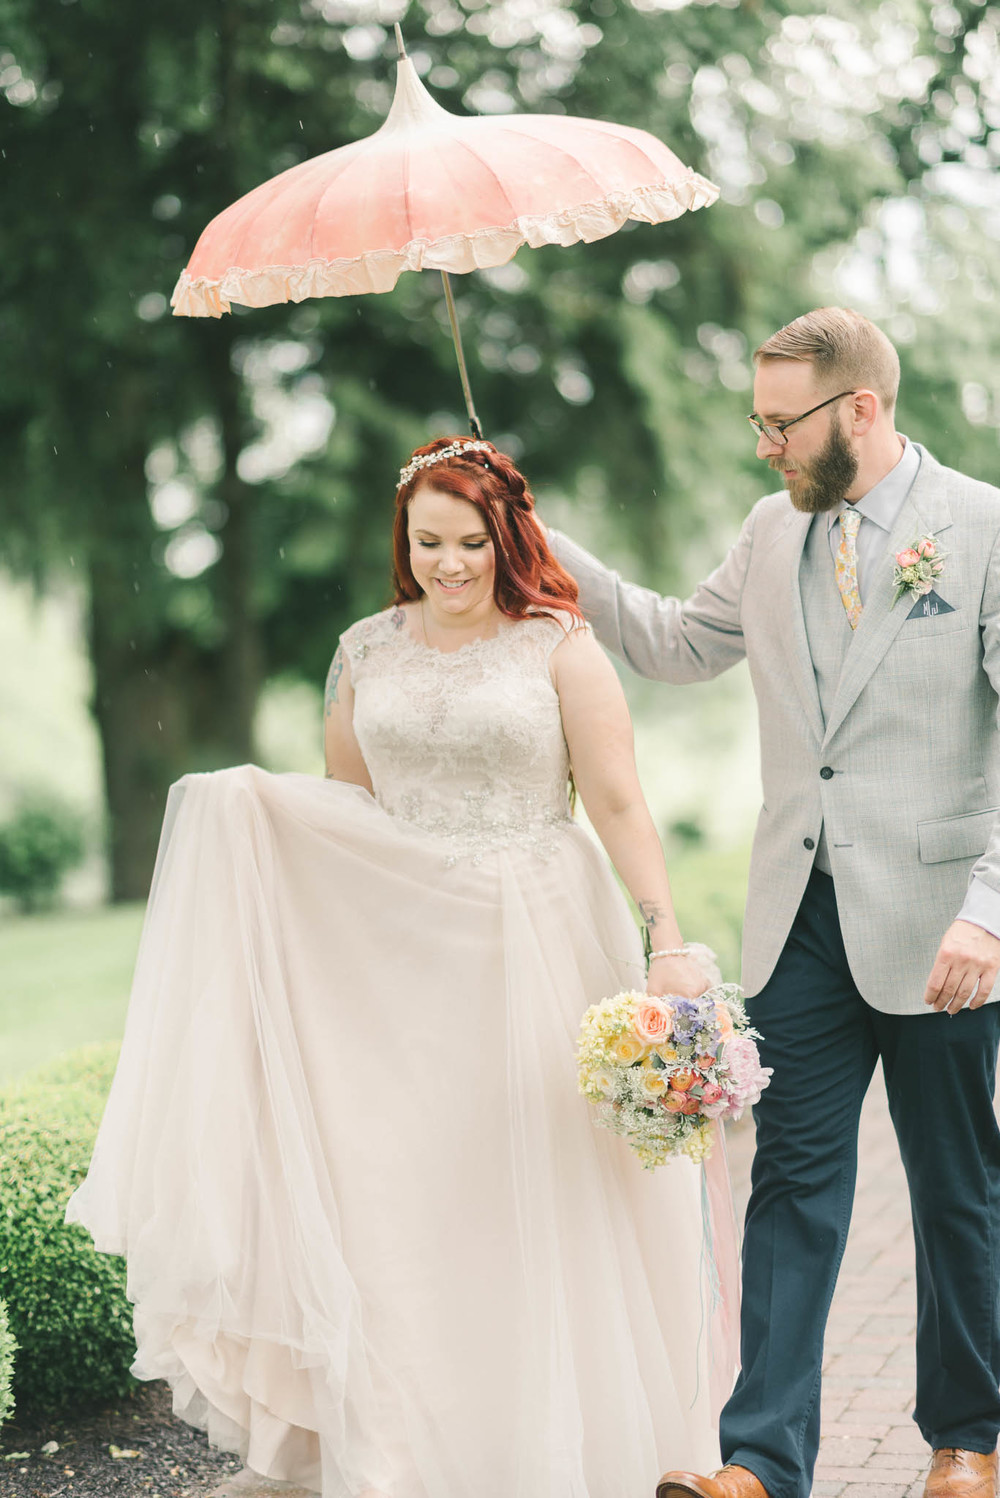 Vintage Bella Umbrella | Featured on Ruffled | Vintage Bella Umbrella Rentals | Elizabeth Fogarty Photography